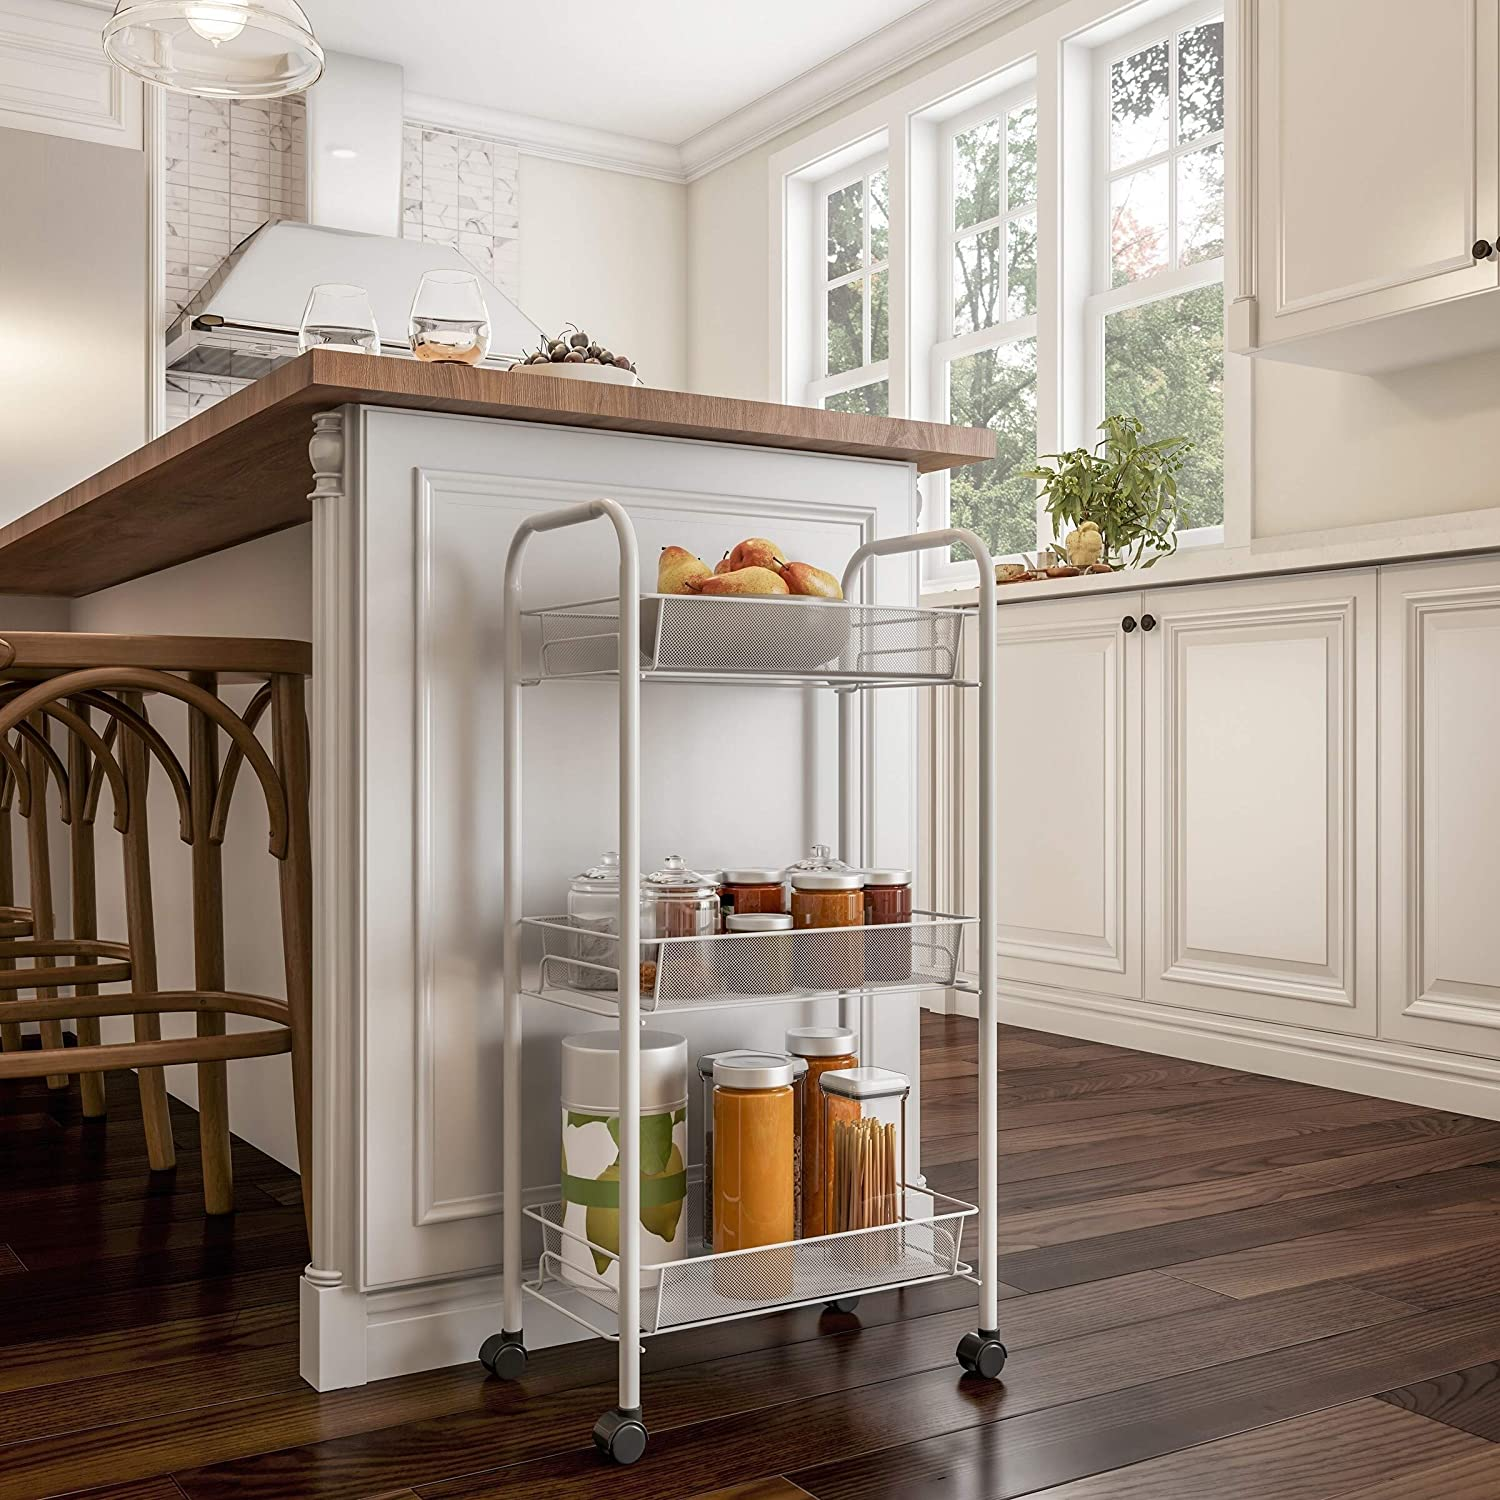 3-Tiered Narrow Rolling Storage Shelves - Mobile Utility Organizer for Kitchen Bathroom Laundry and More White Casual Metal Plastic